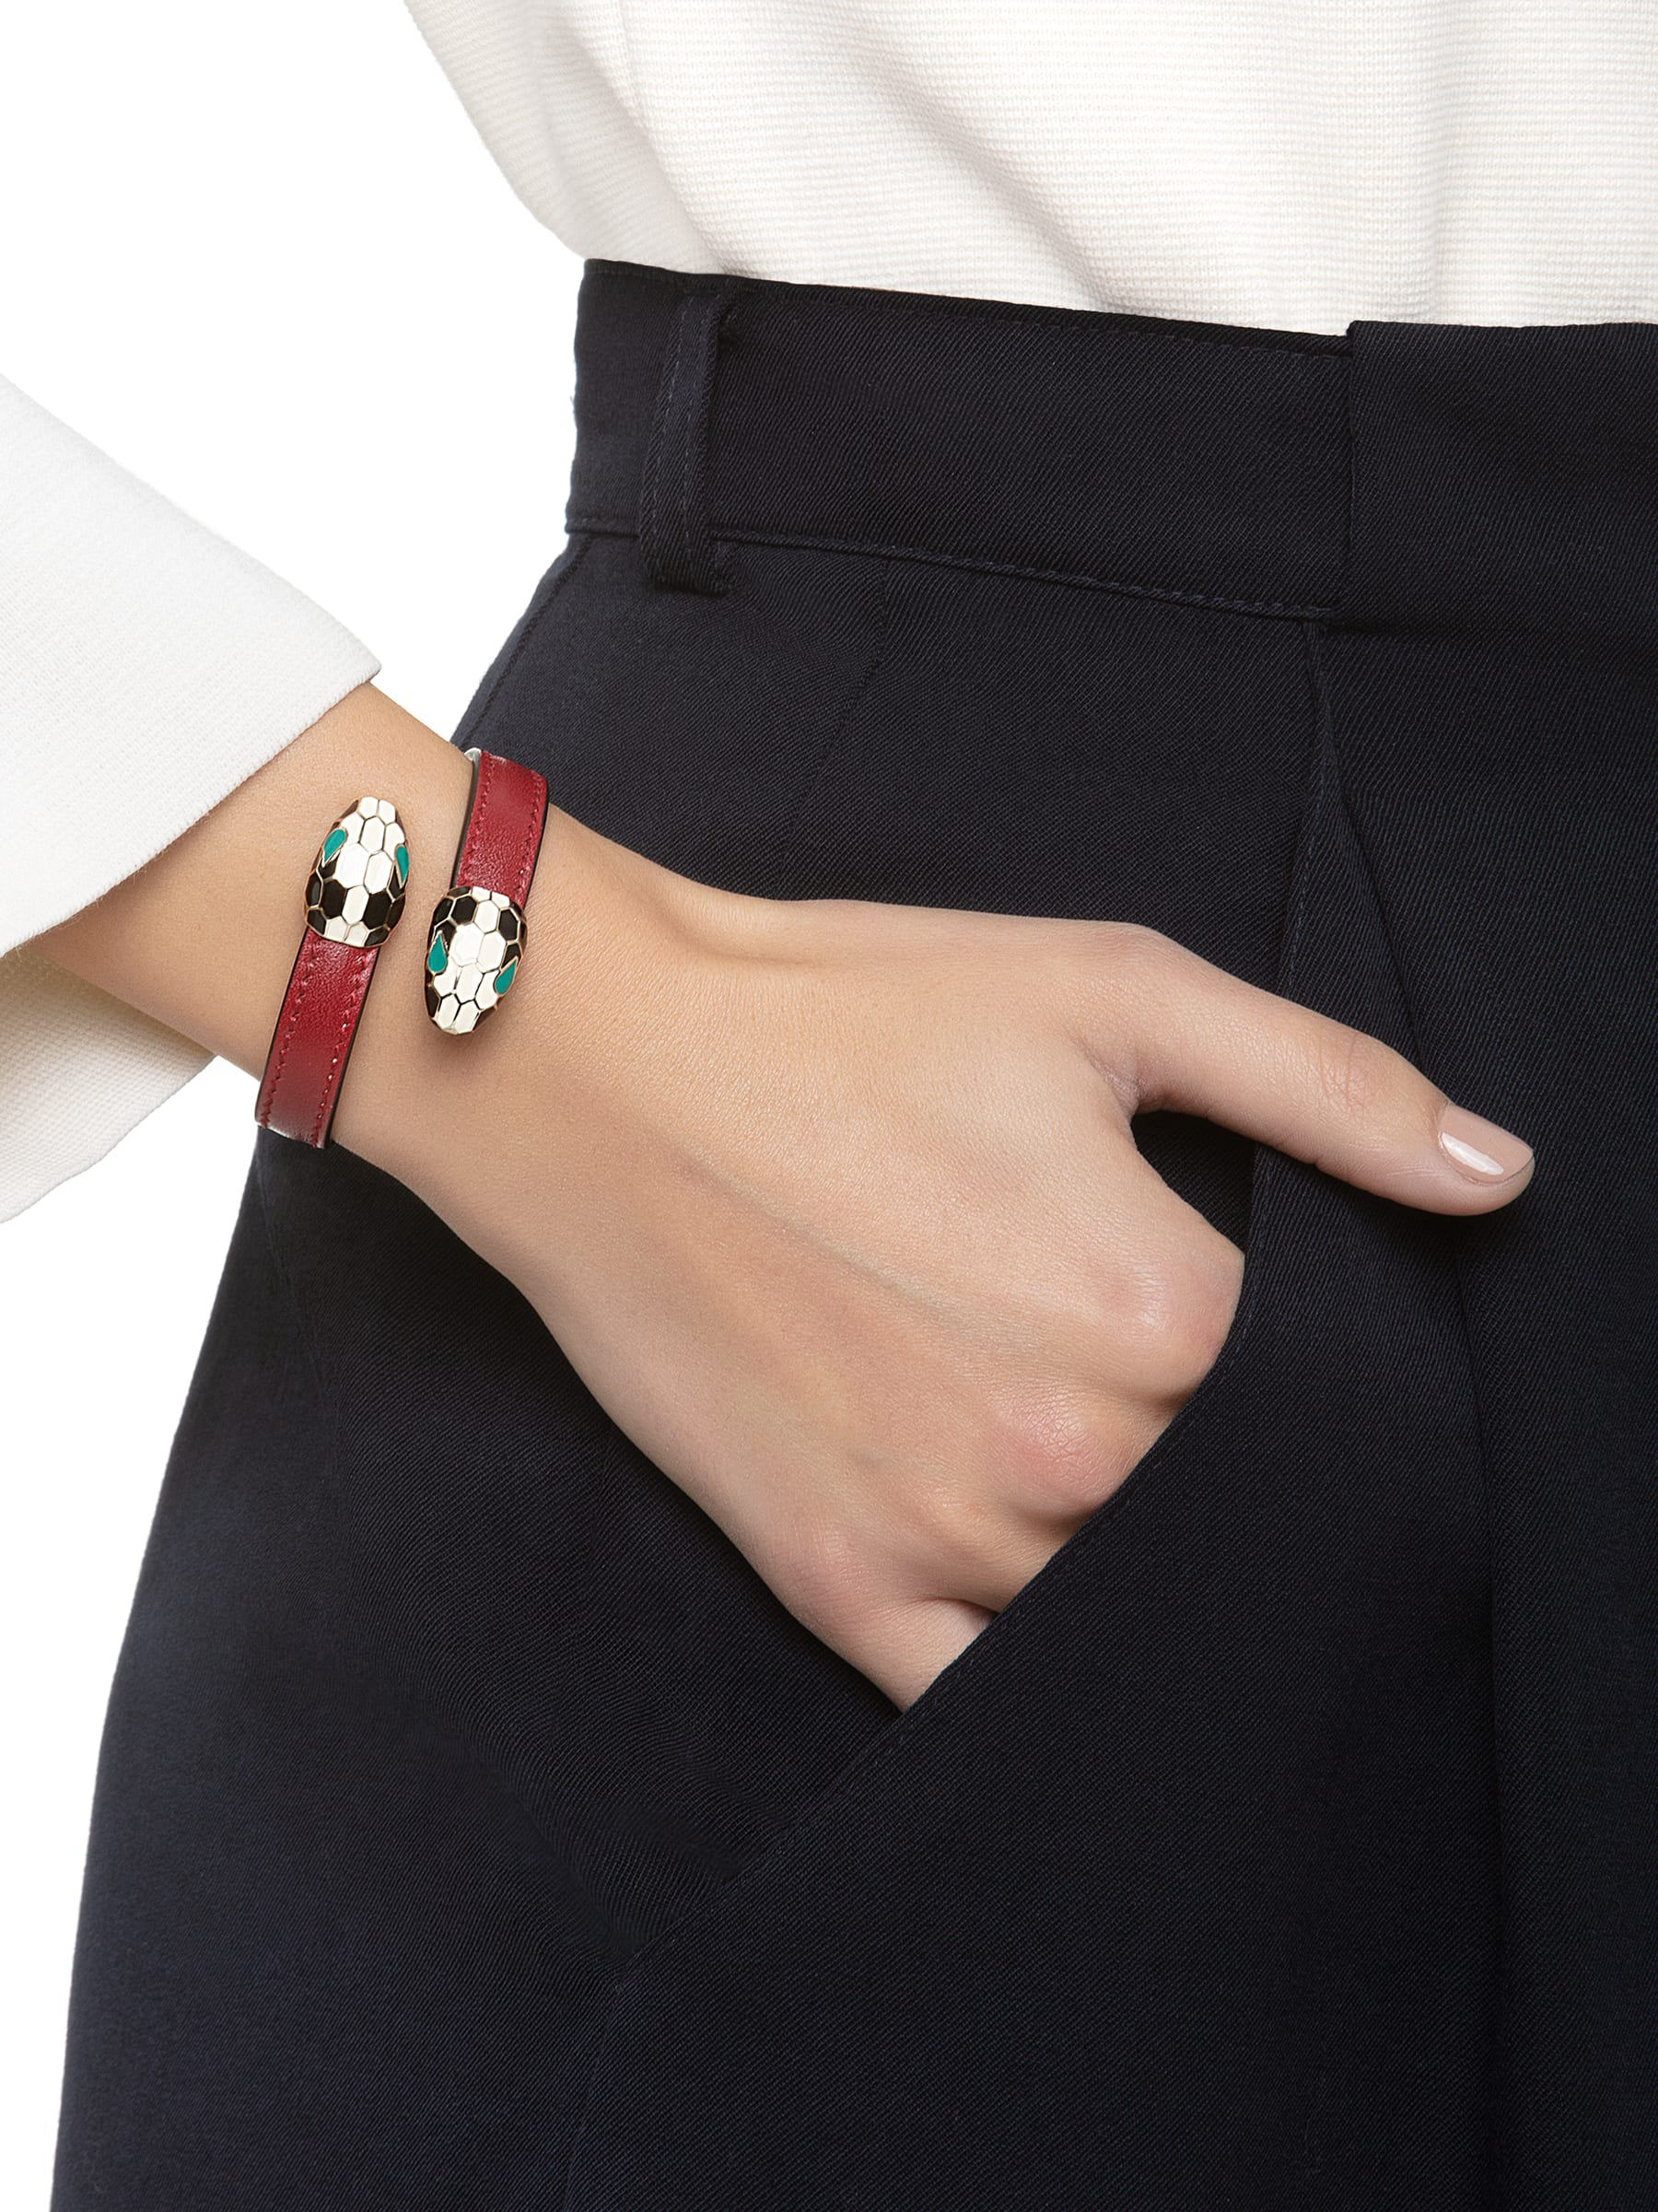 Serpenti Forever soft bangle bracelet in ruby red calf leather, with brass light gold plated hardware. Iconic contraire snakehead décor in black and white enamel, with green enamel eyes SerpSoftContr-CL-RR image 2